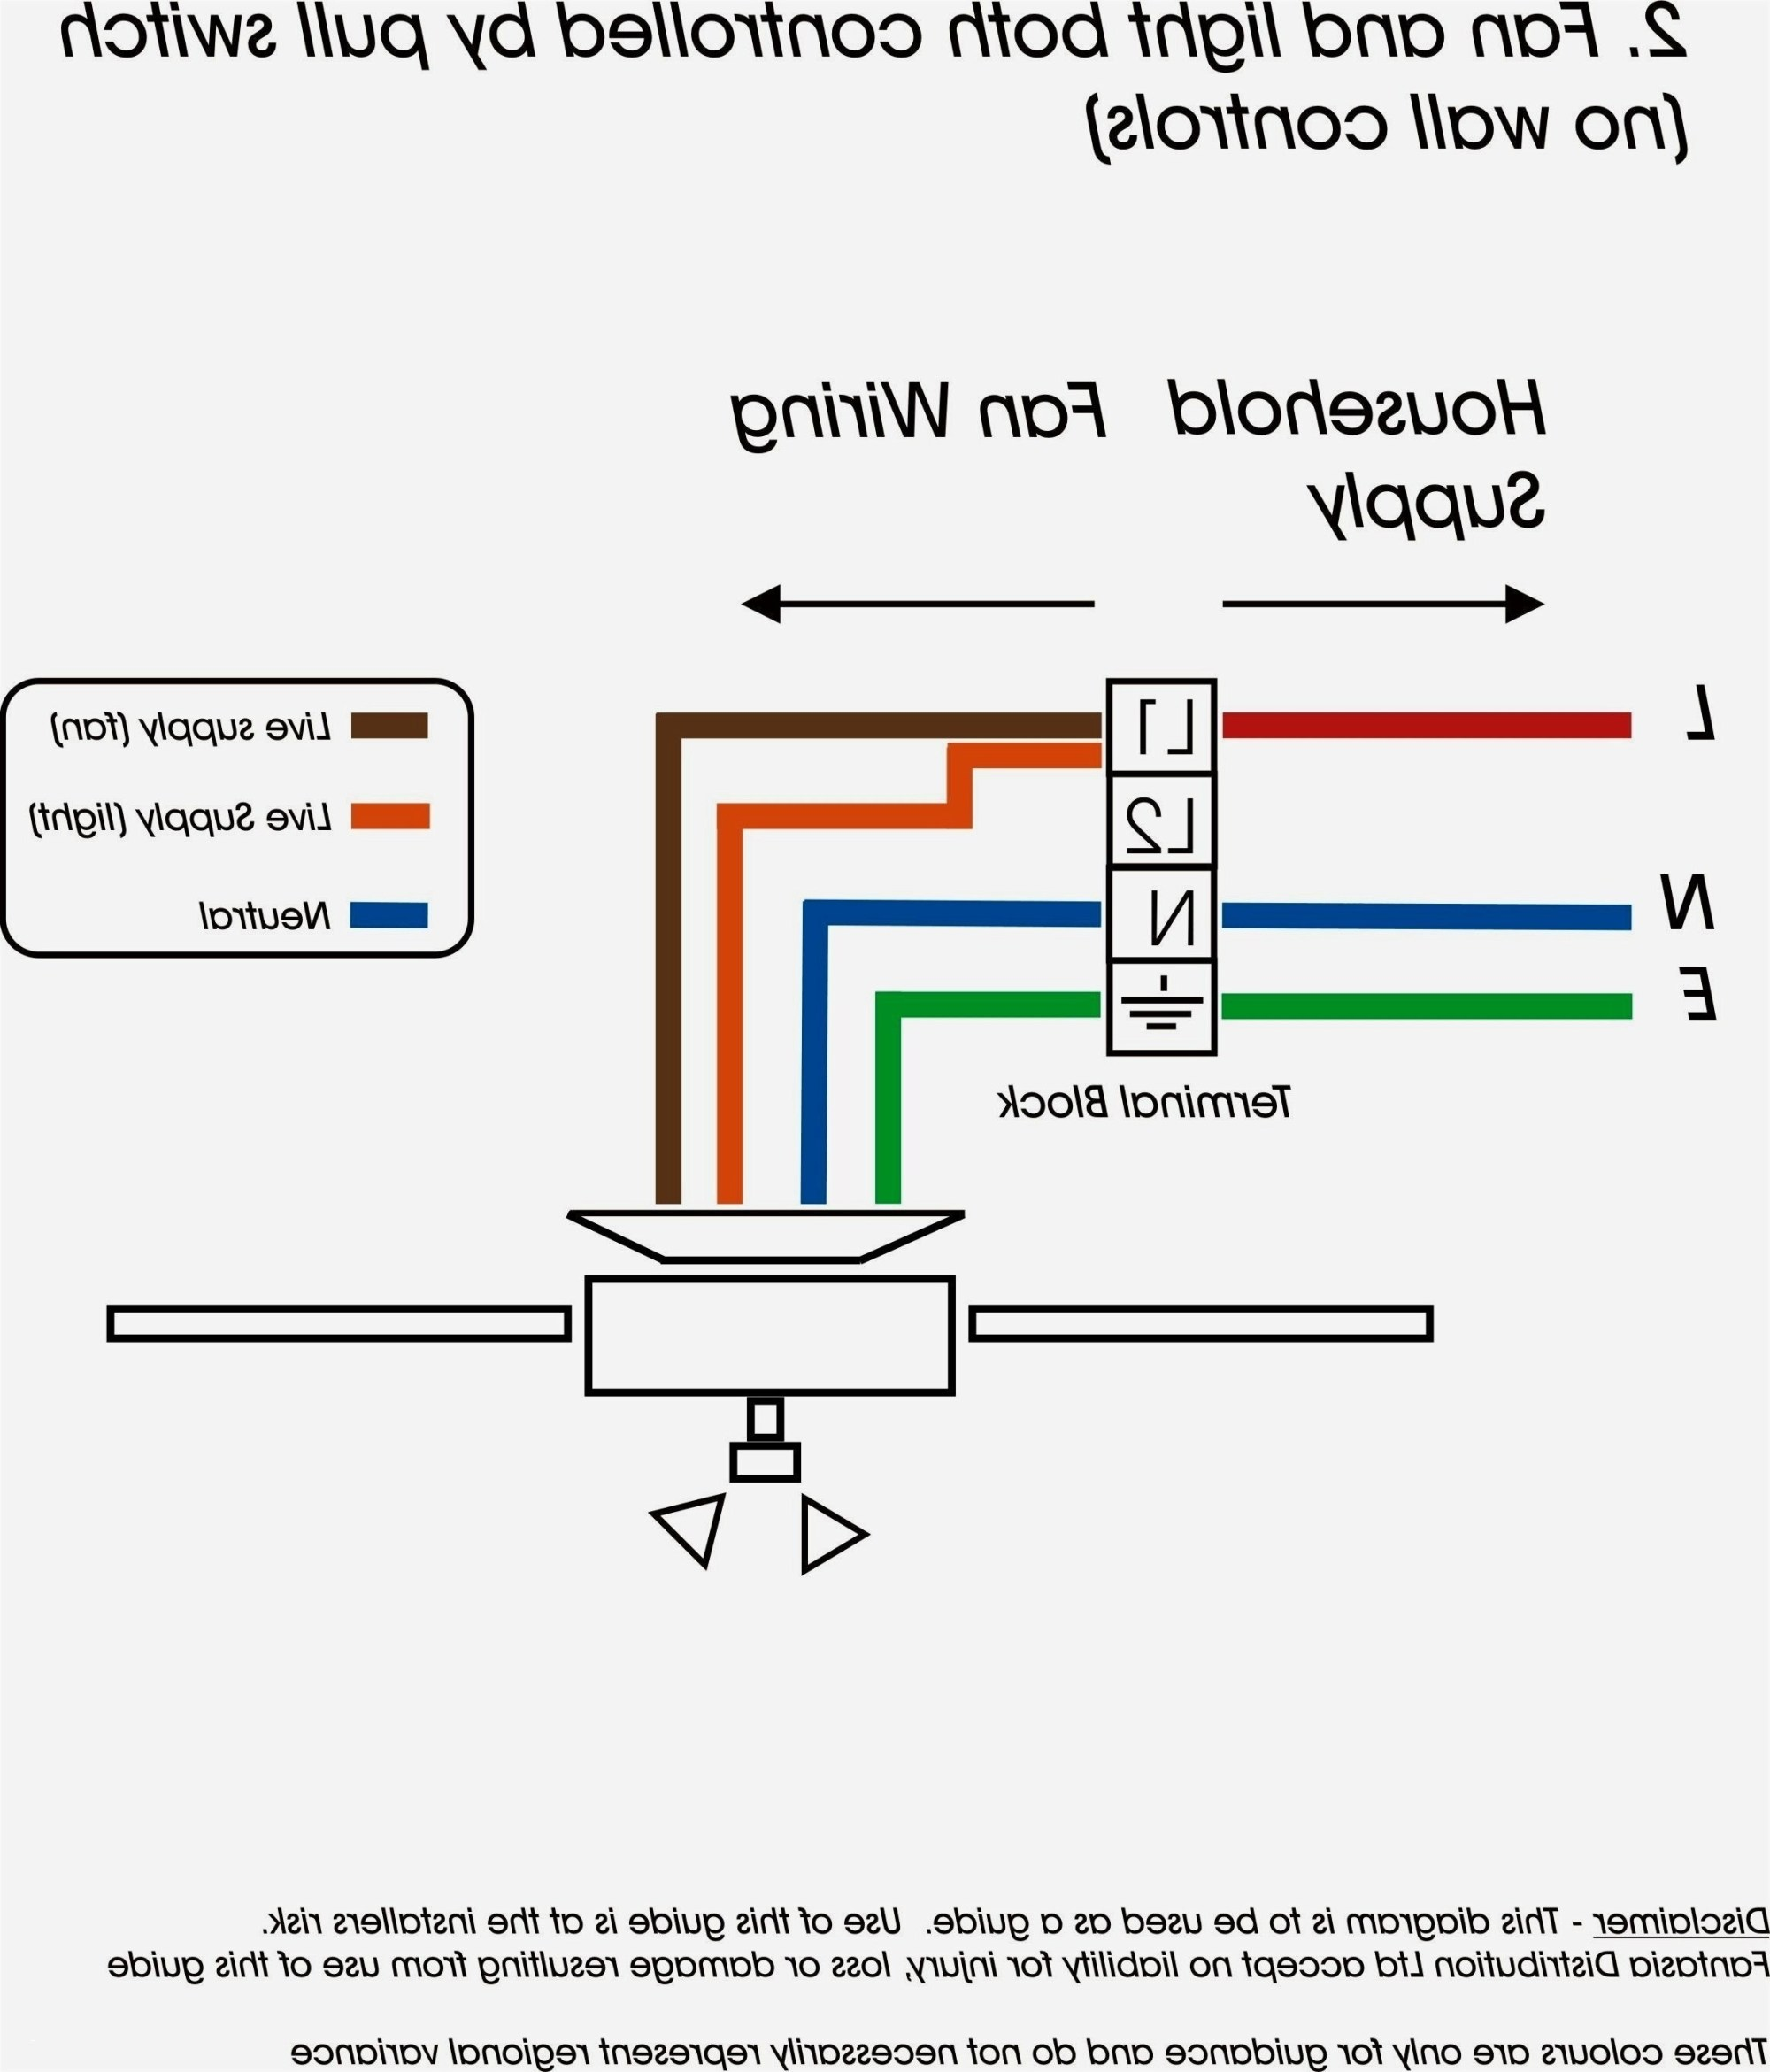 hight resolution of aircraft wiring diagram software aircraft wiring diagram legend refrence free electrical diagram aircraft wiring diagram